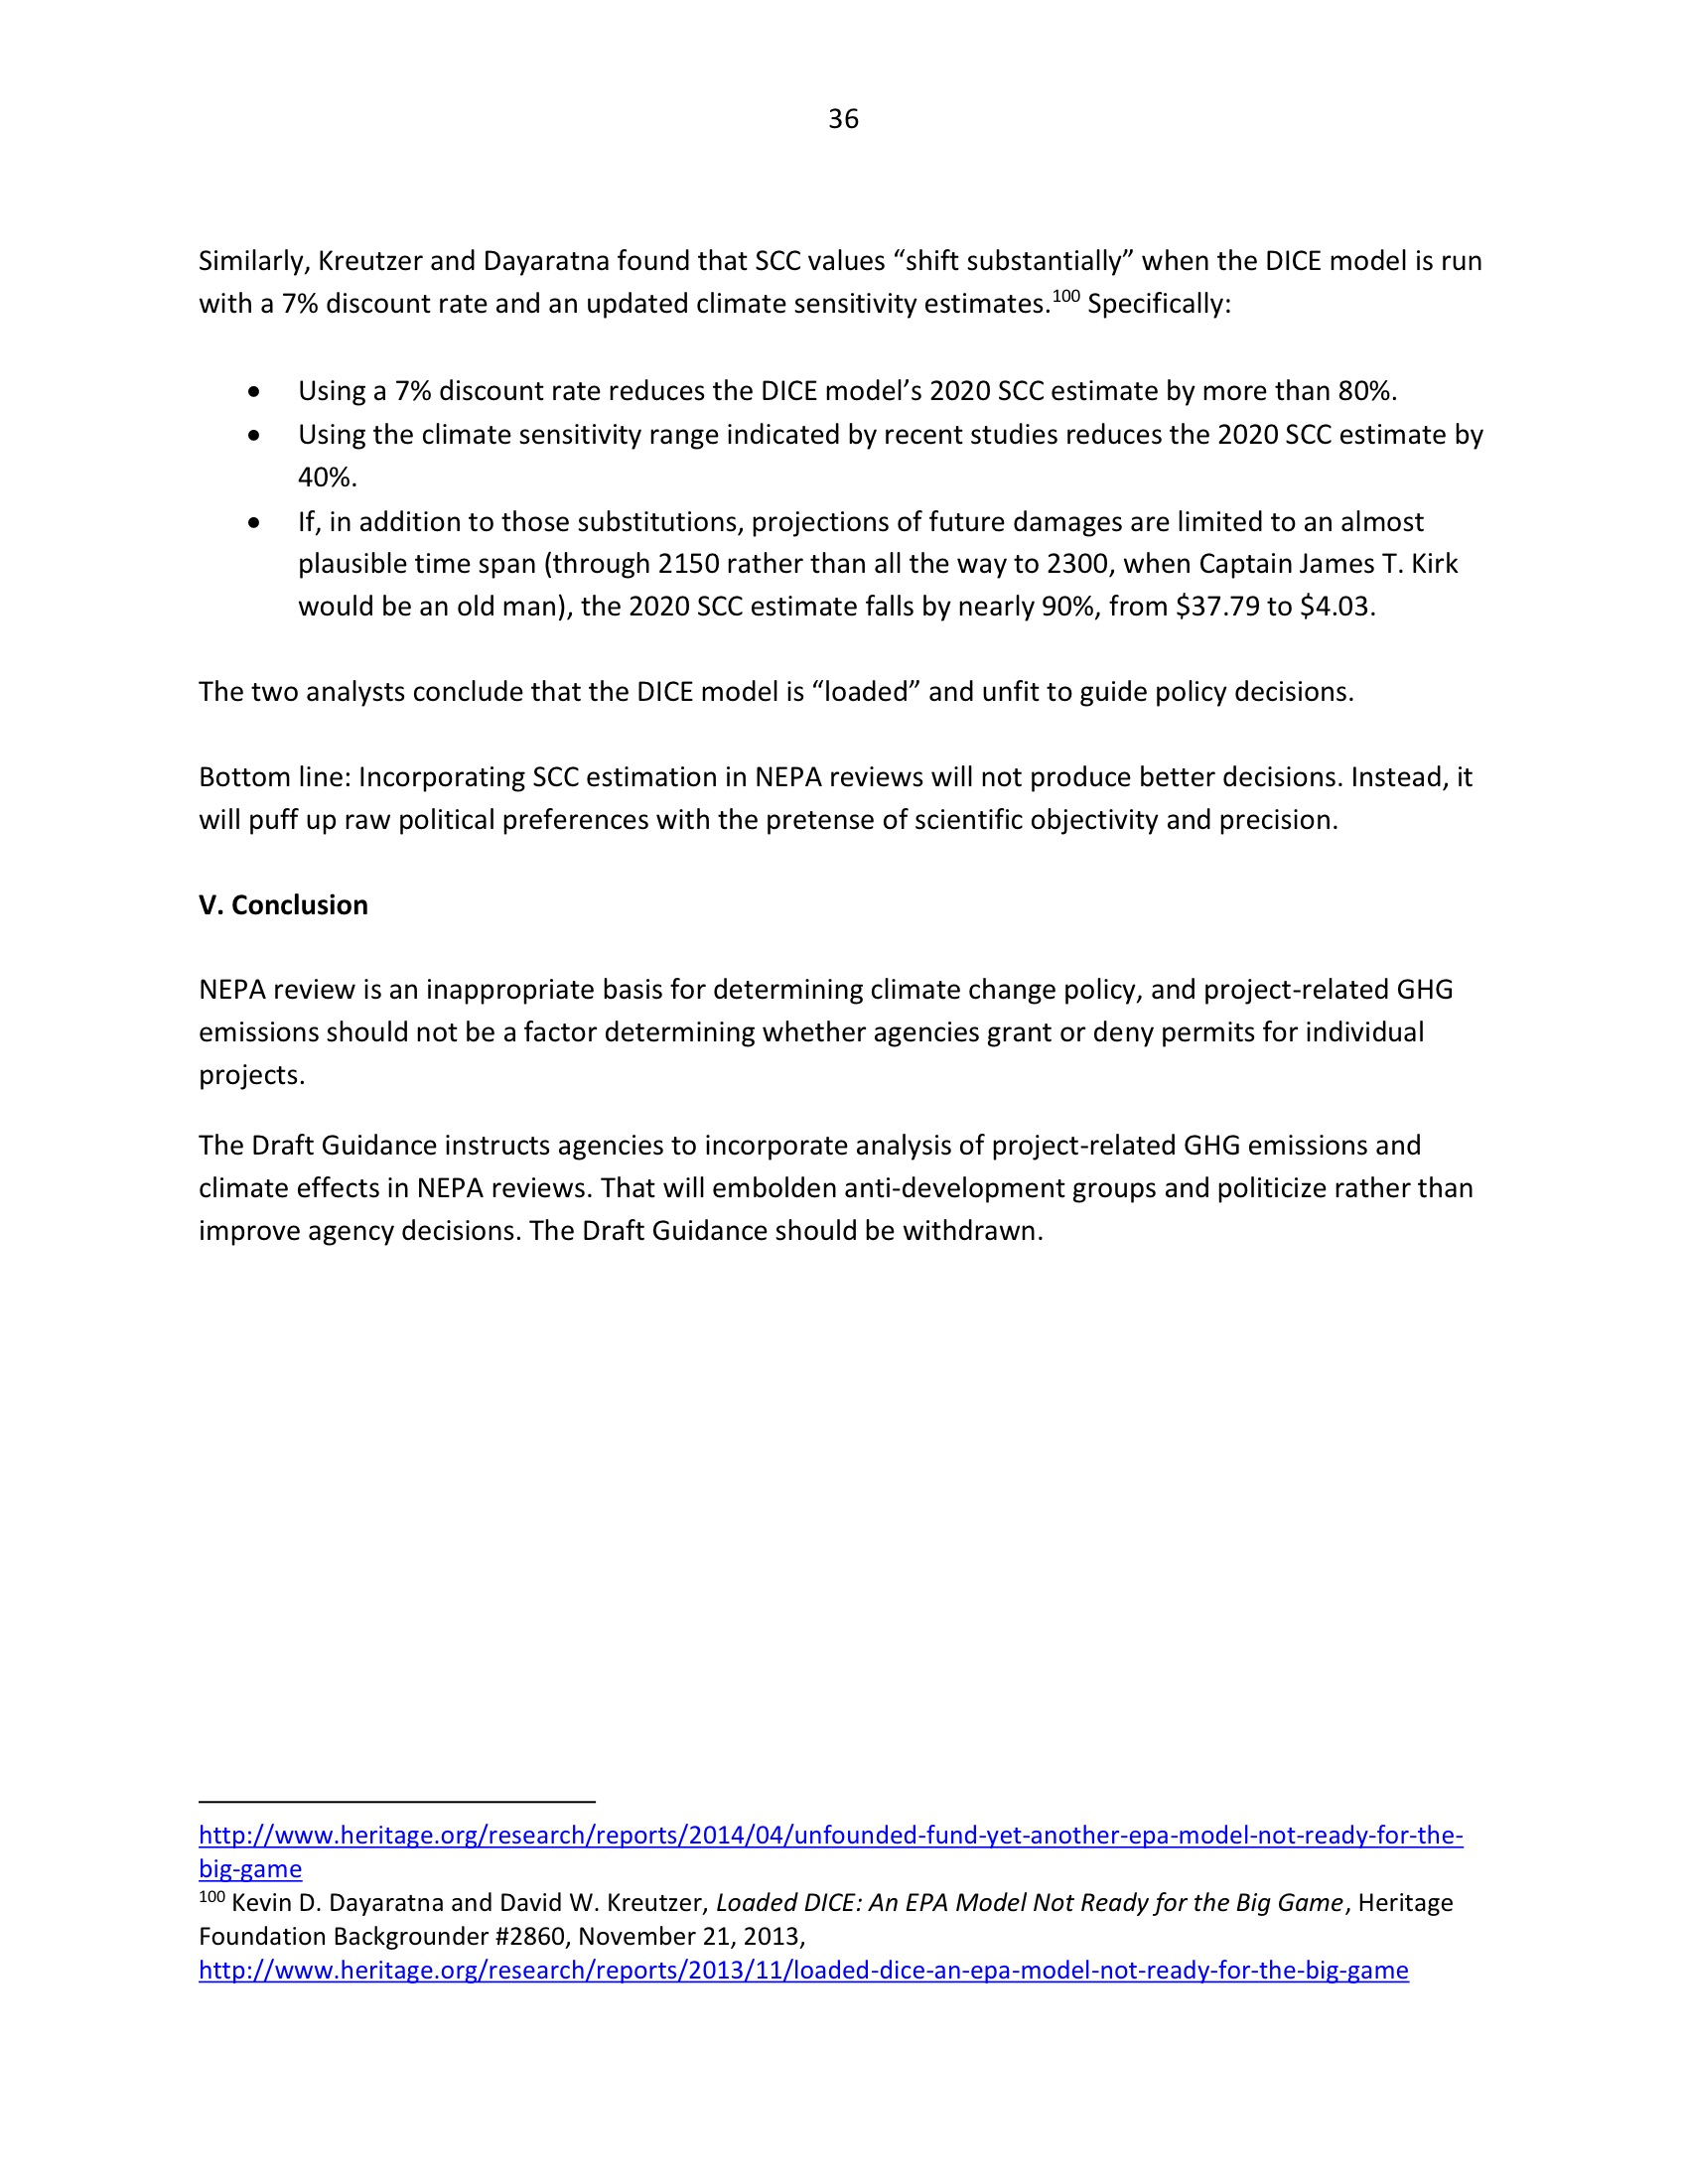 Marlo Lewis Competitive Enterprise Institute and Free Market Allies Comment Letter on NEPA GHG Guidance Document 108-36